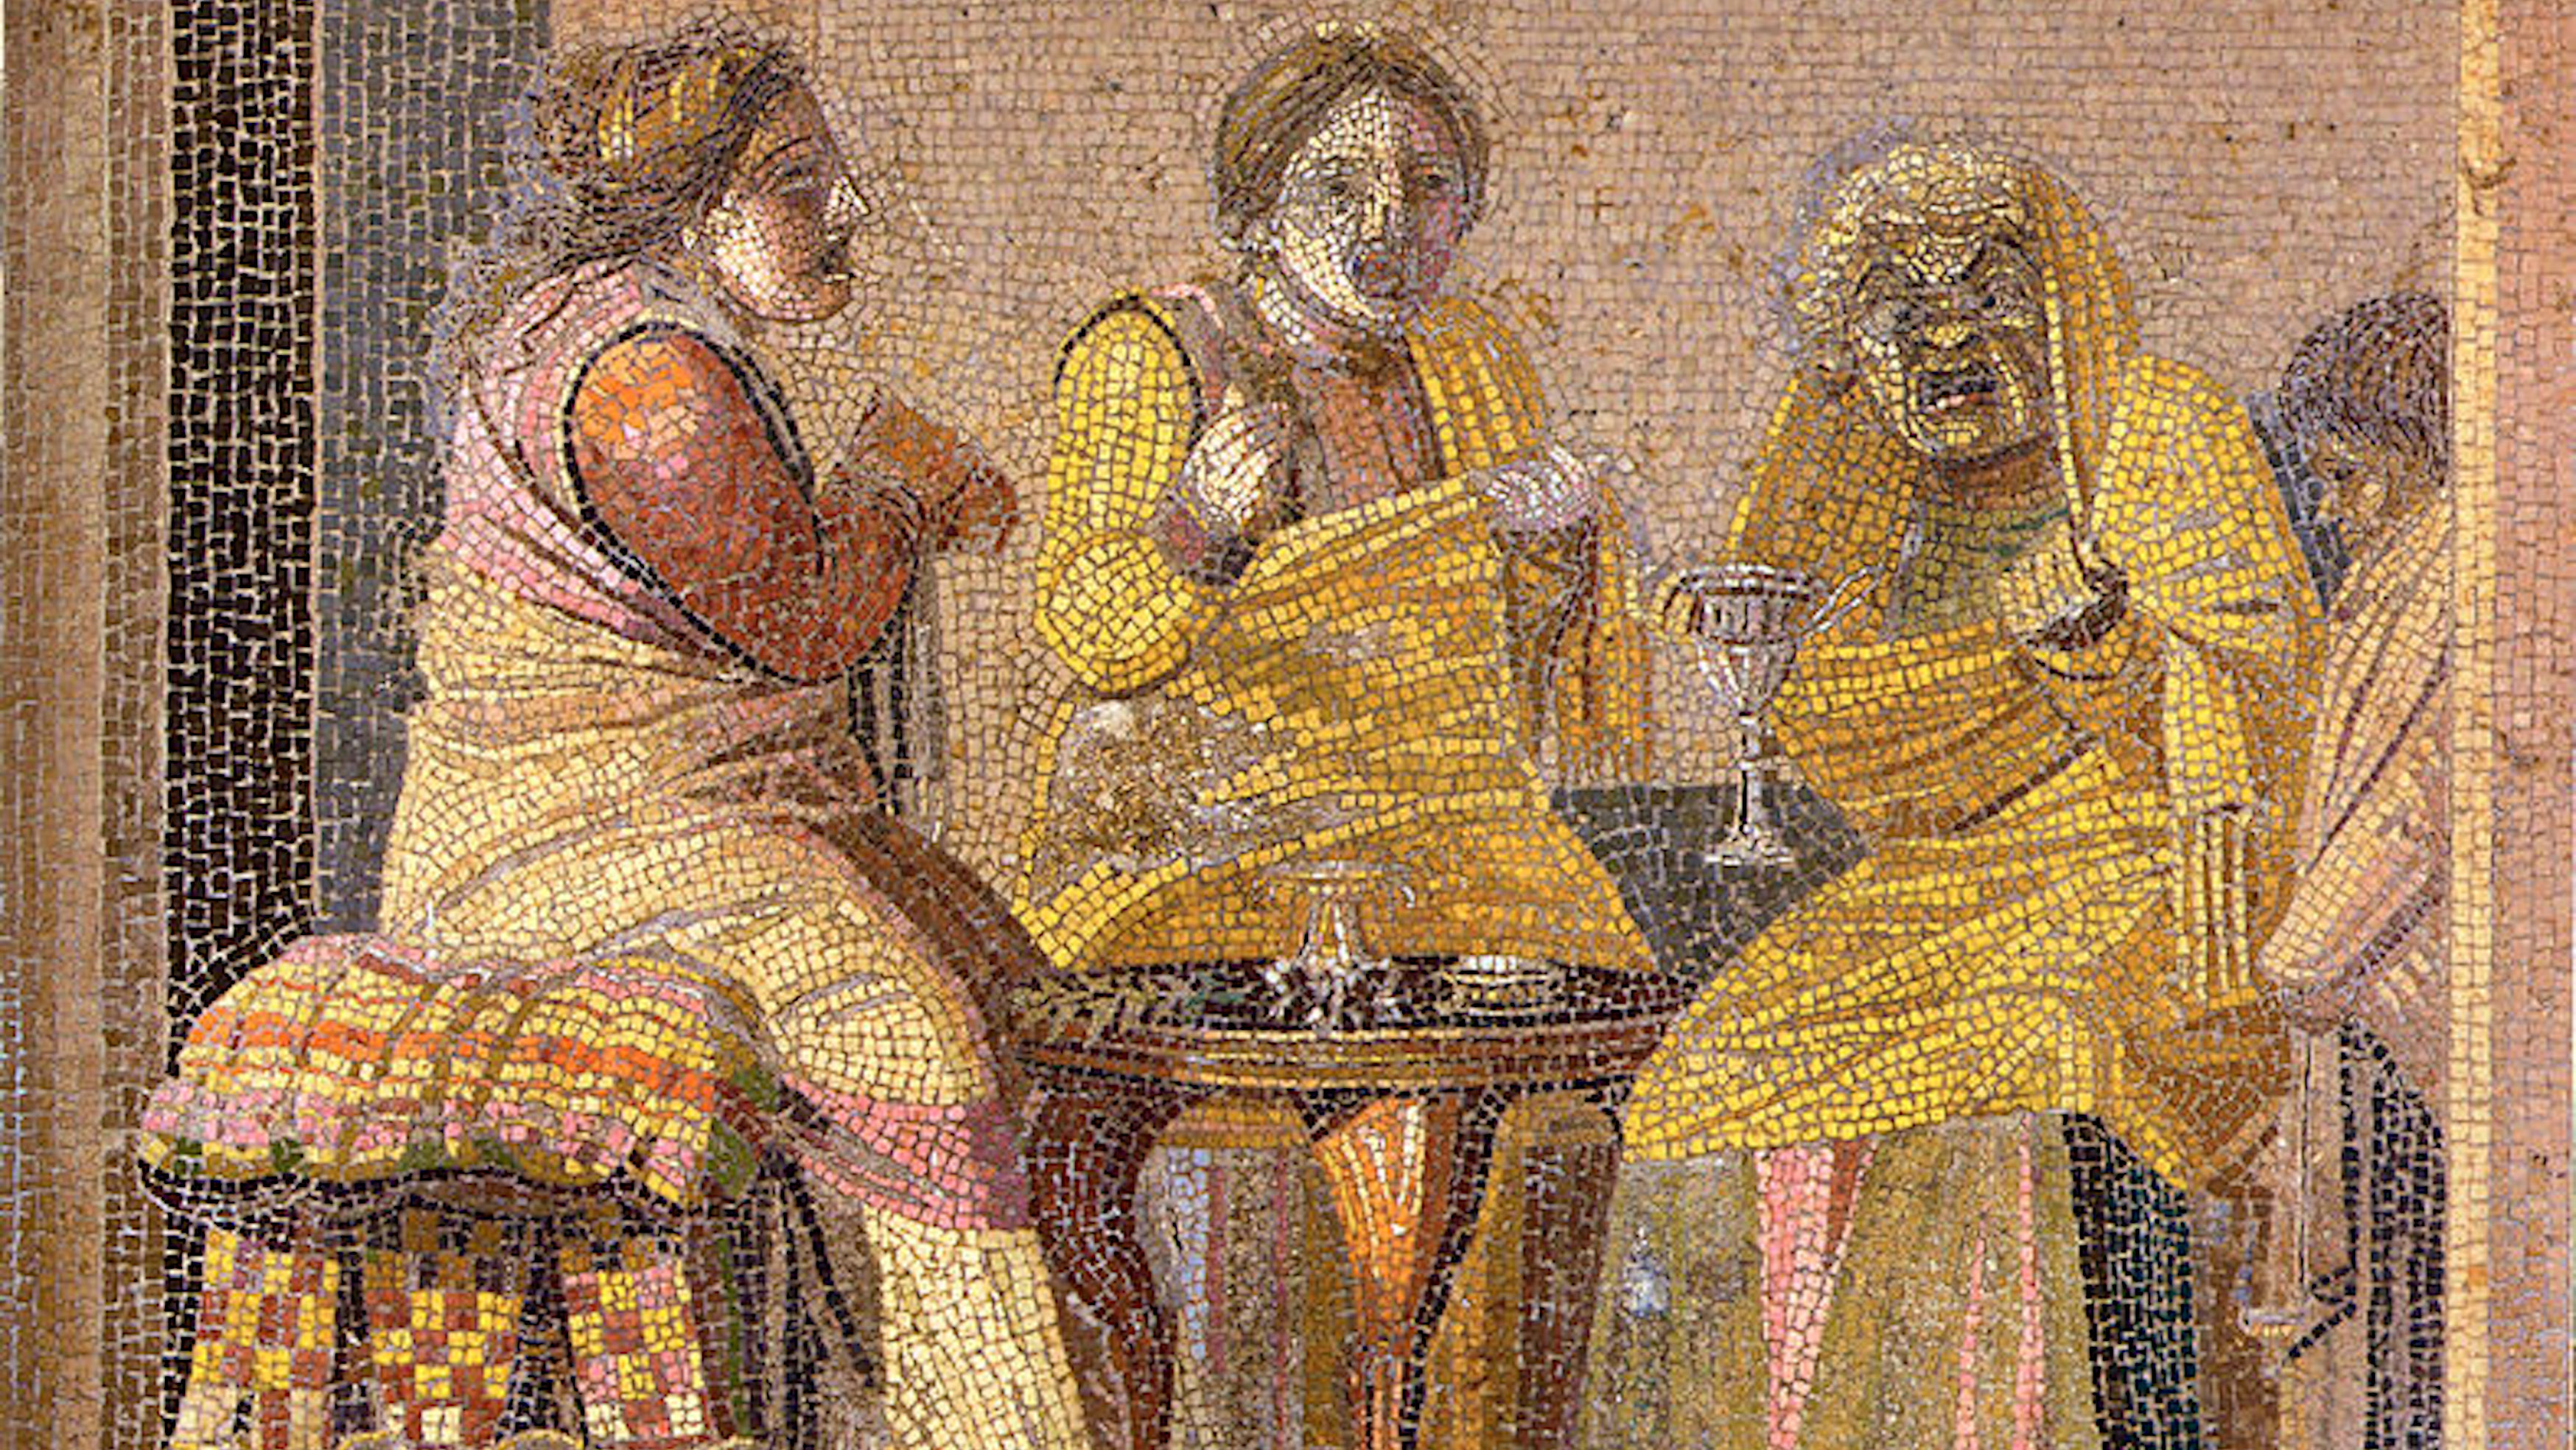 Women in Ancient Rome probably co-ruminating.